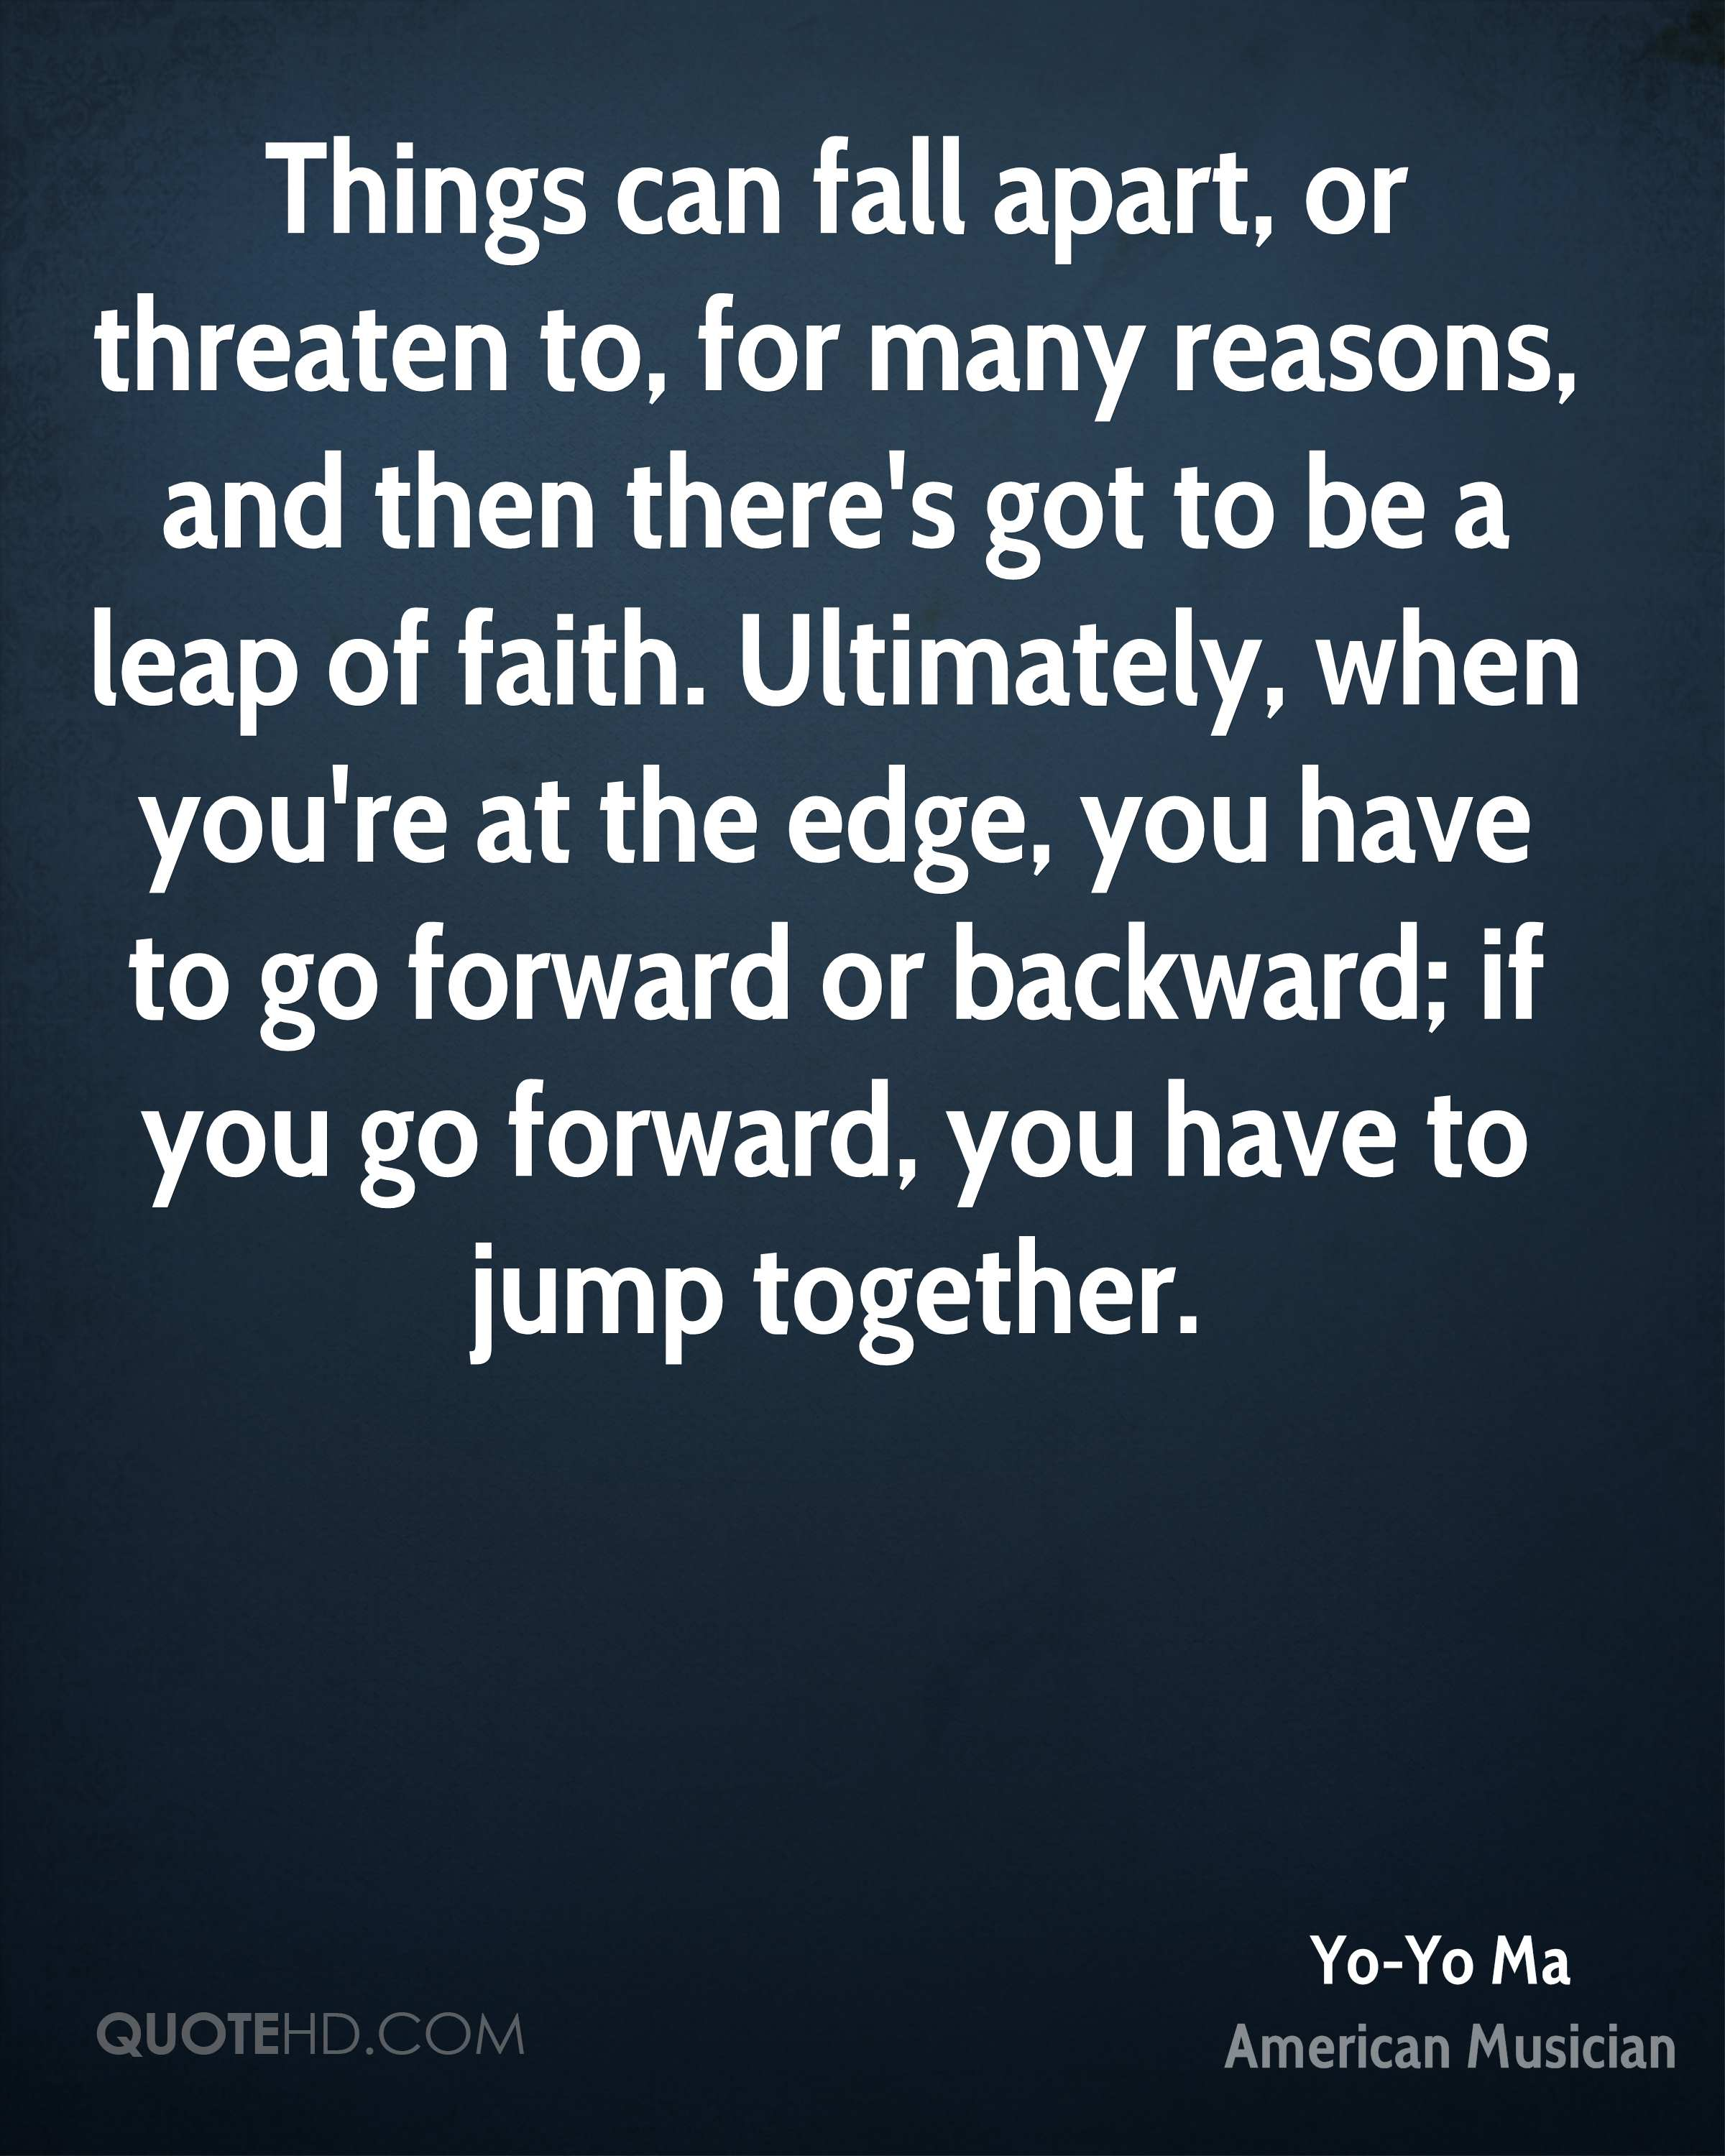 Things can fall apart, or threaten to, for many reasons, and then there's got to be a leap of faith. Ultimately, when you're at the edge, you have to go forward or backward; if you go forward, you have to jump together.